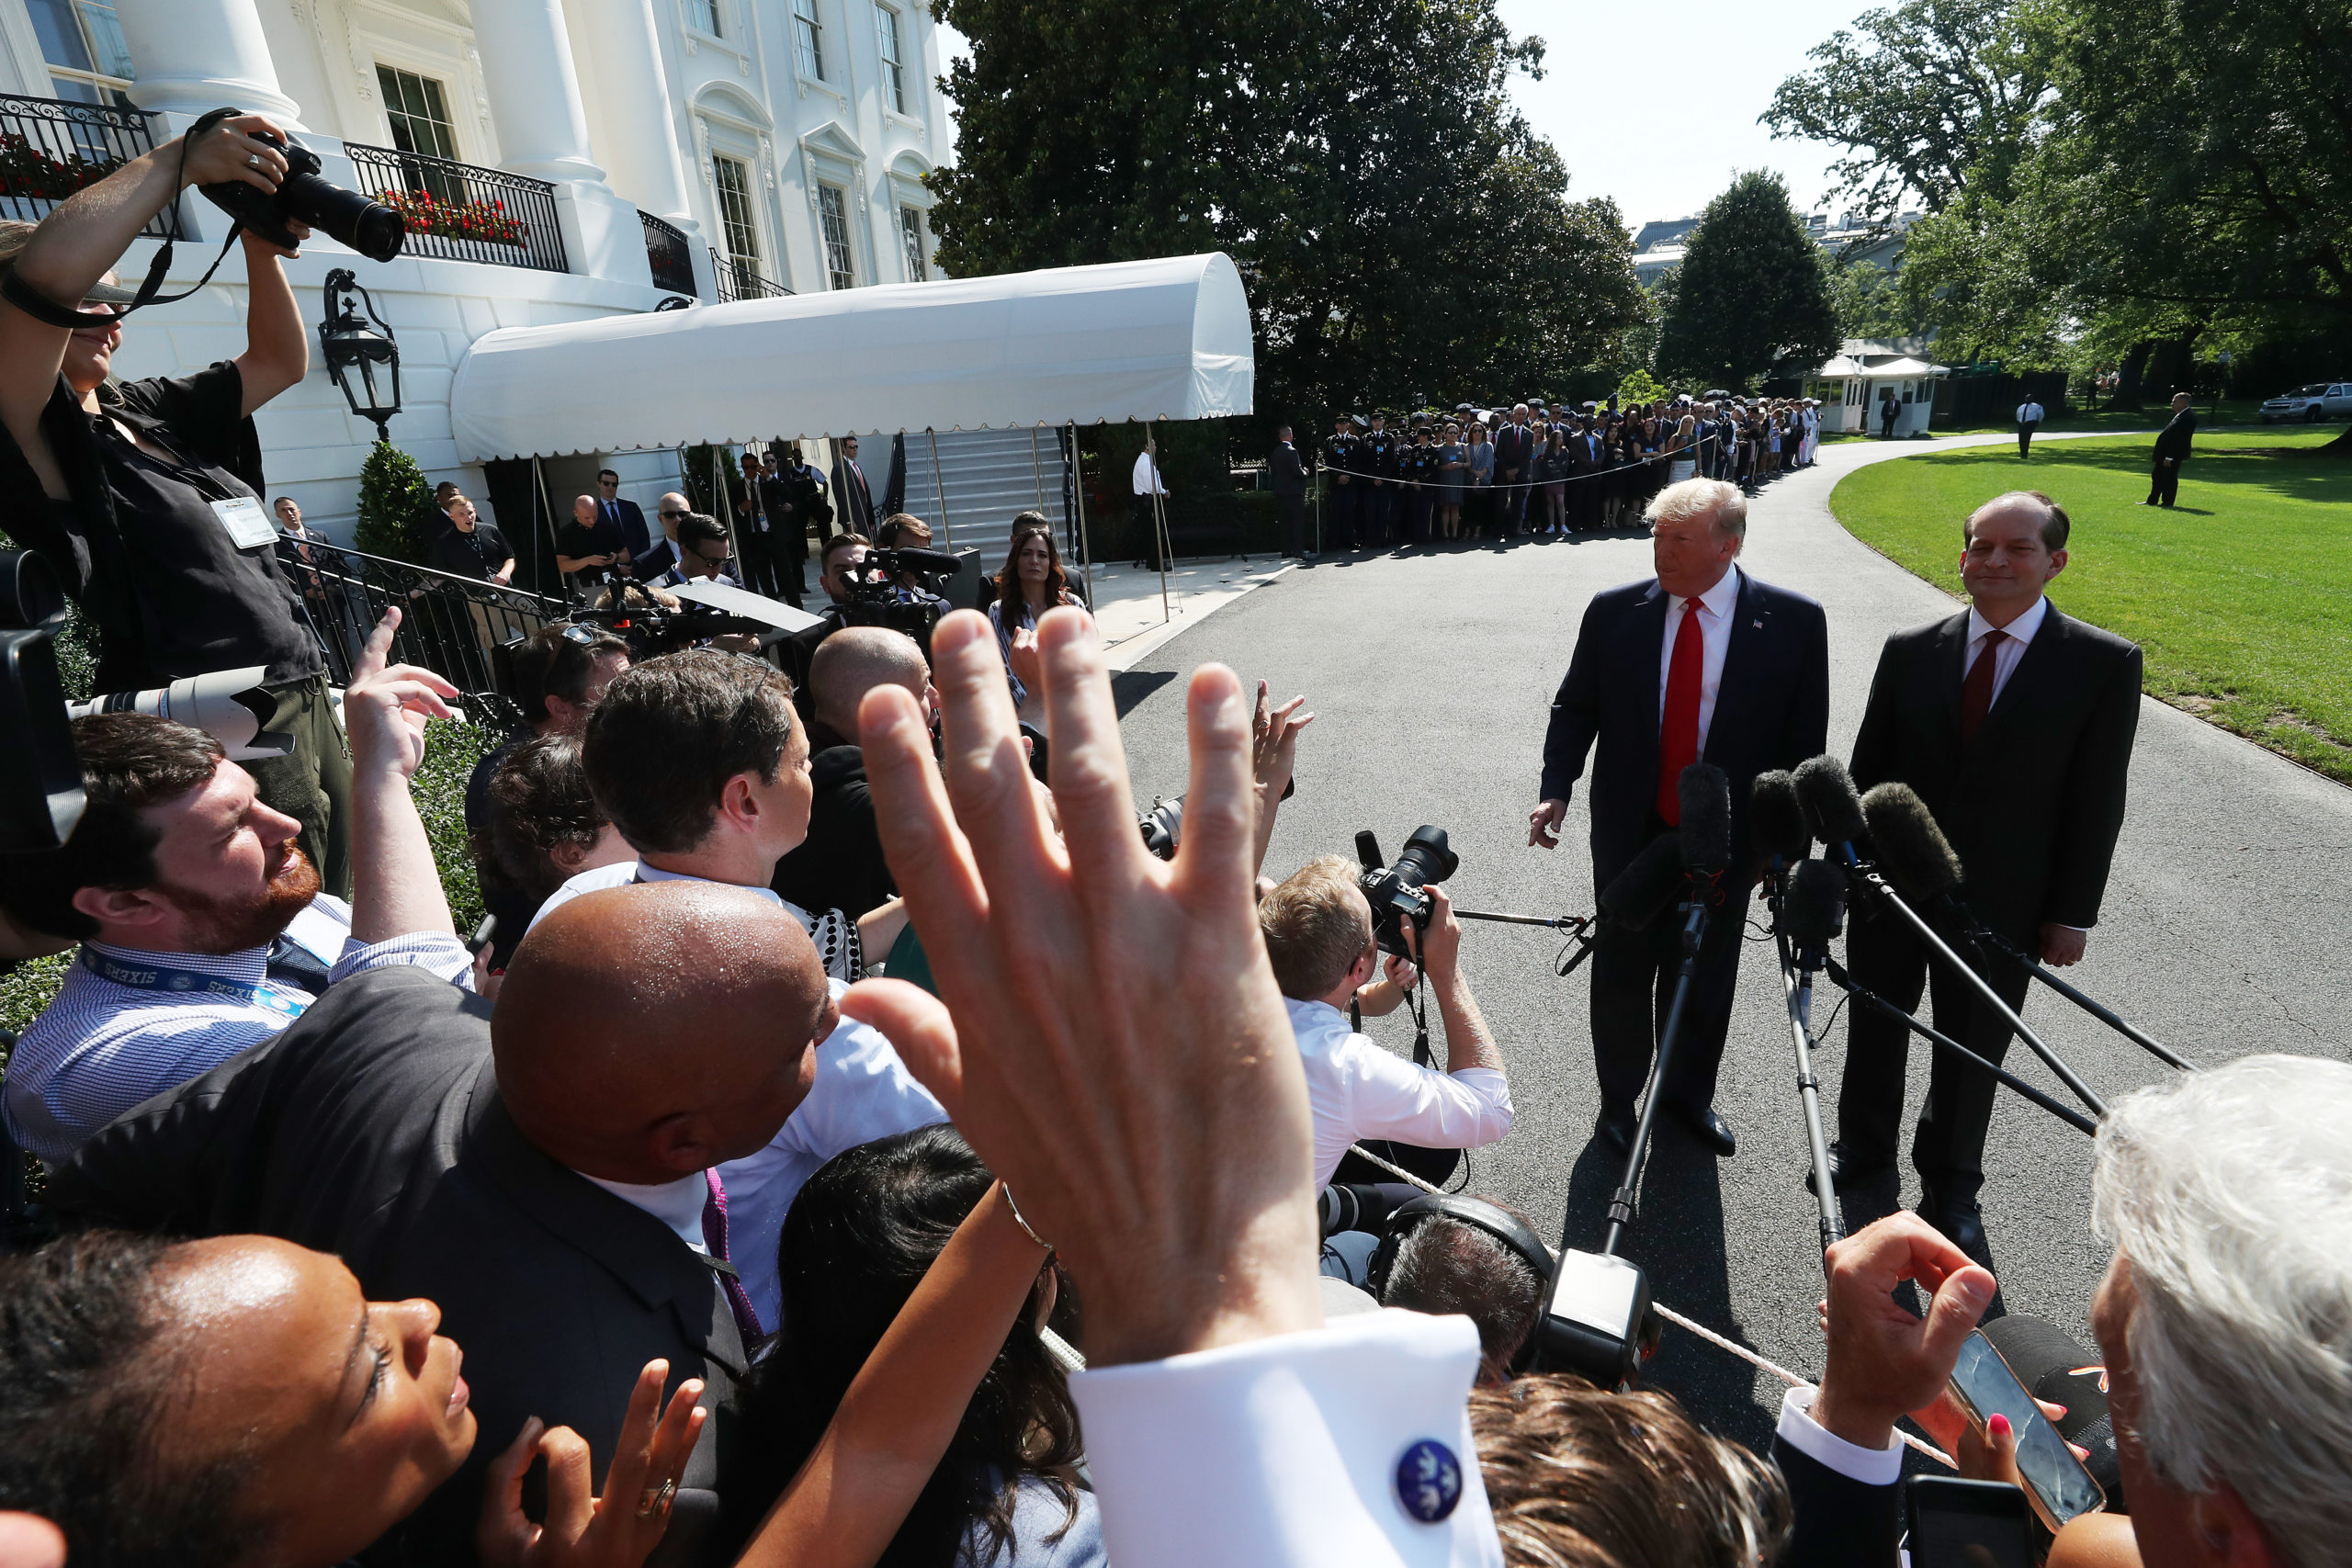 U.S. President Donald Trump stands with Labor Secretary Alex Acosta, who announced his resignation, while talking to the media at the White House on July 12, 2019 in Washington, DC. Acosta has been under fire for his role in the Jeffrey Epstein plea deal over a decade ago when he was a U.S. Attorney in Florida. (Mark Wilson/Getty Images)